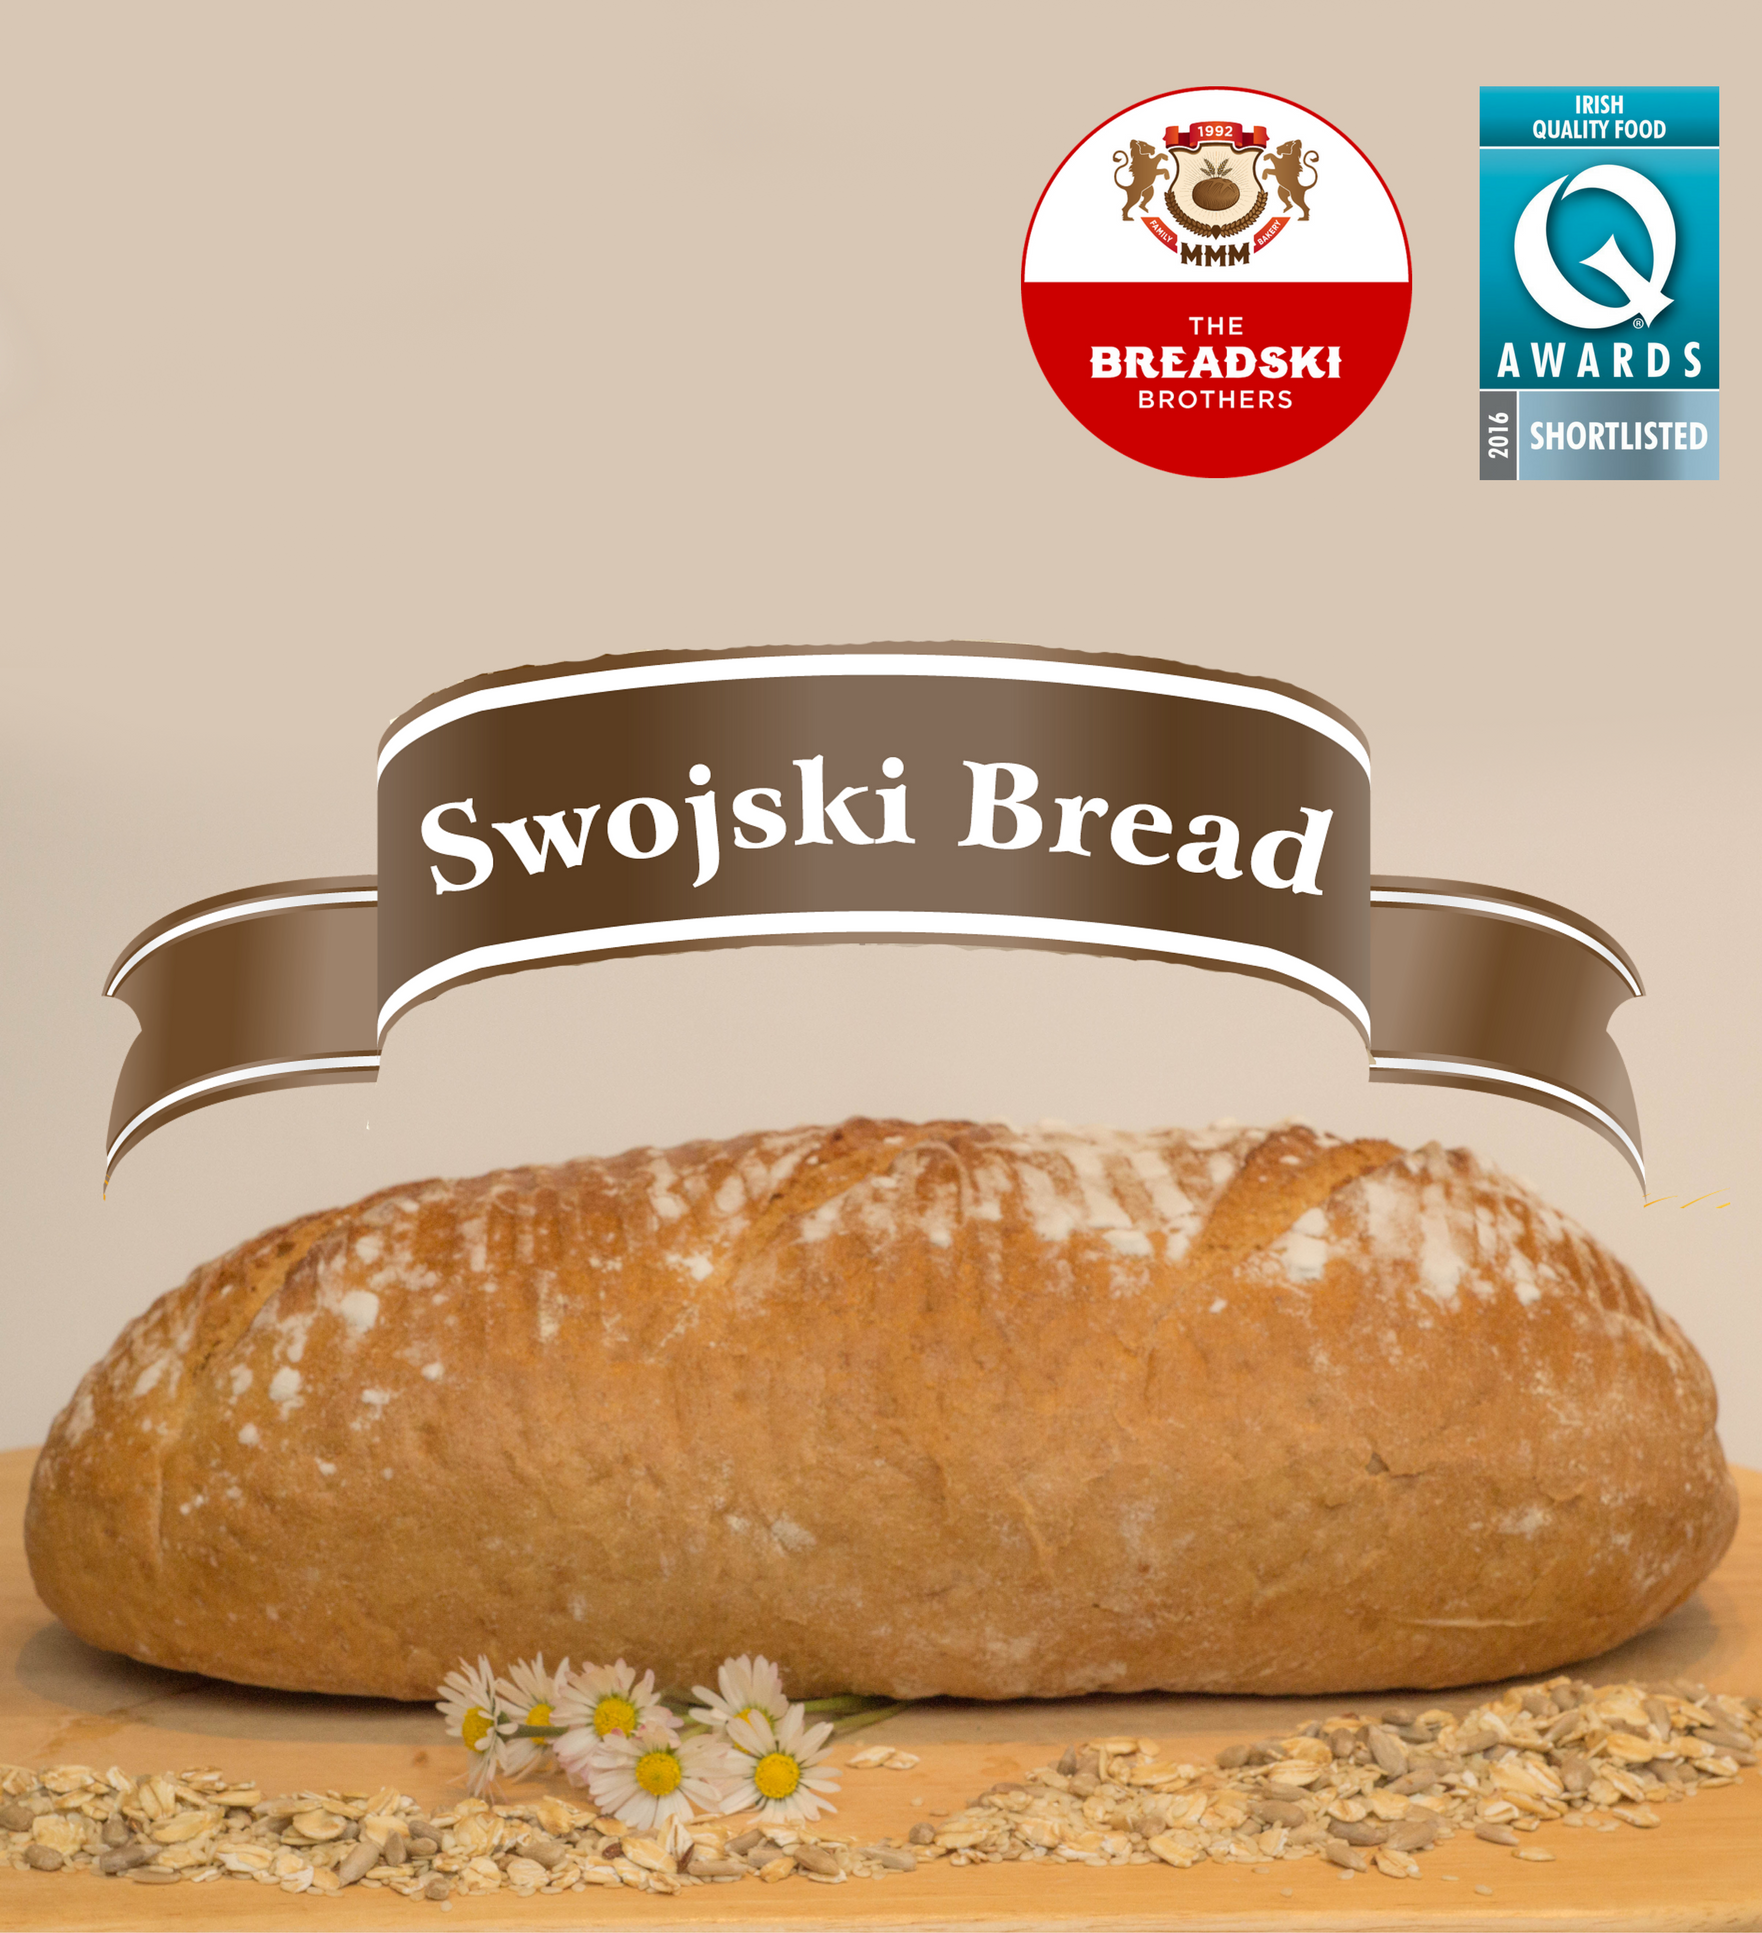 The_Breadski_Brothers_-_Homely_Bread_IQFA.png